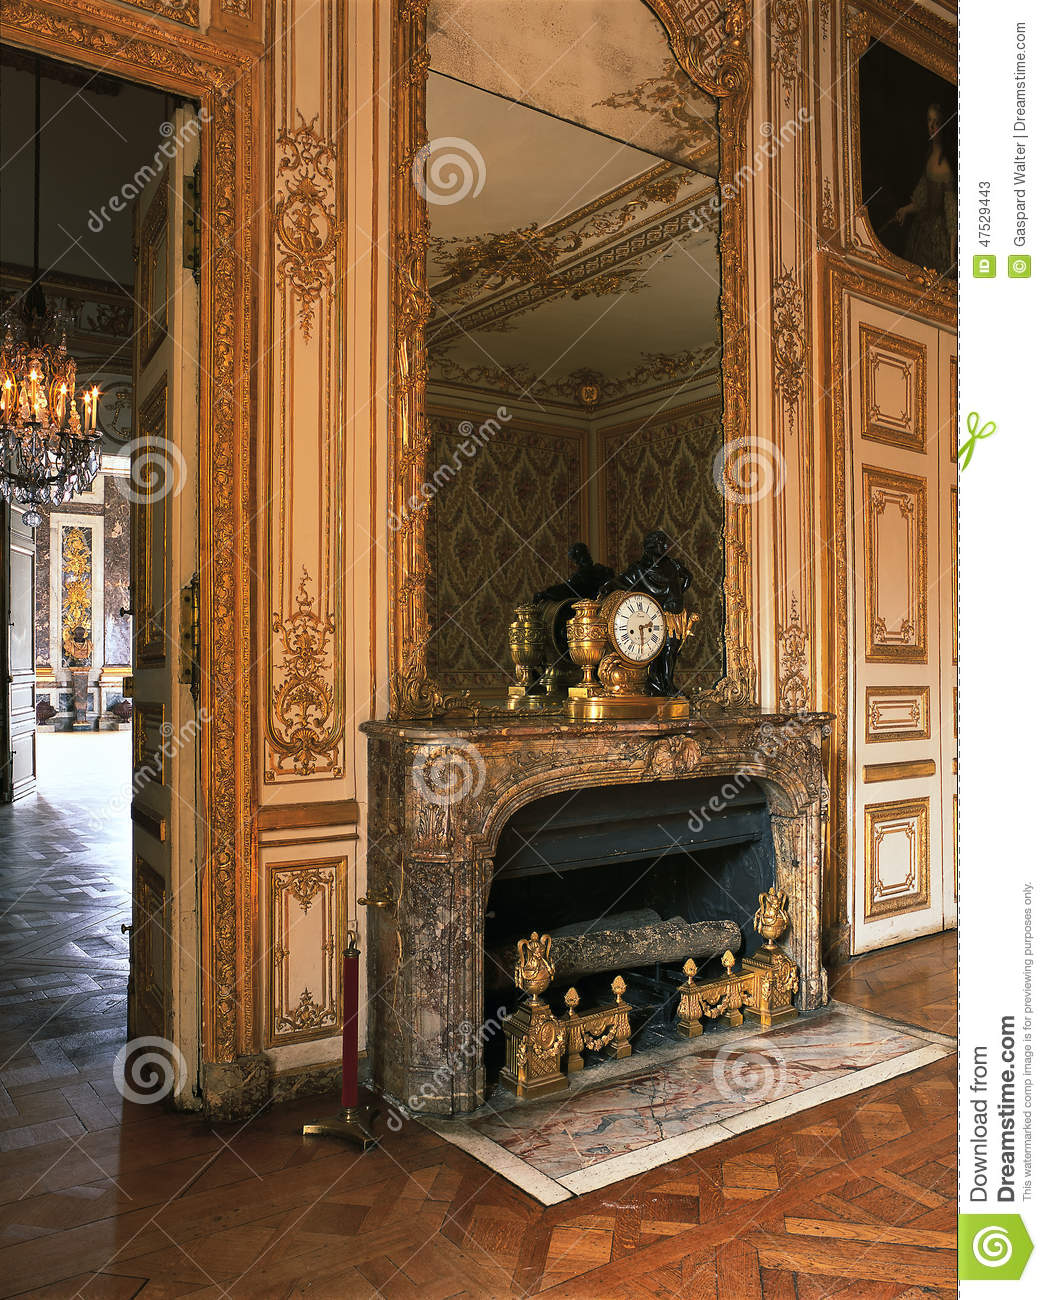 large mirror on a fireplace at versailles palace france editorial